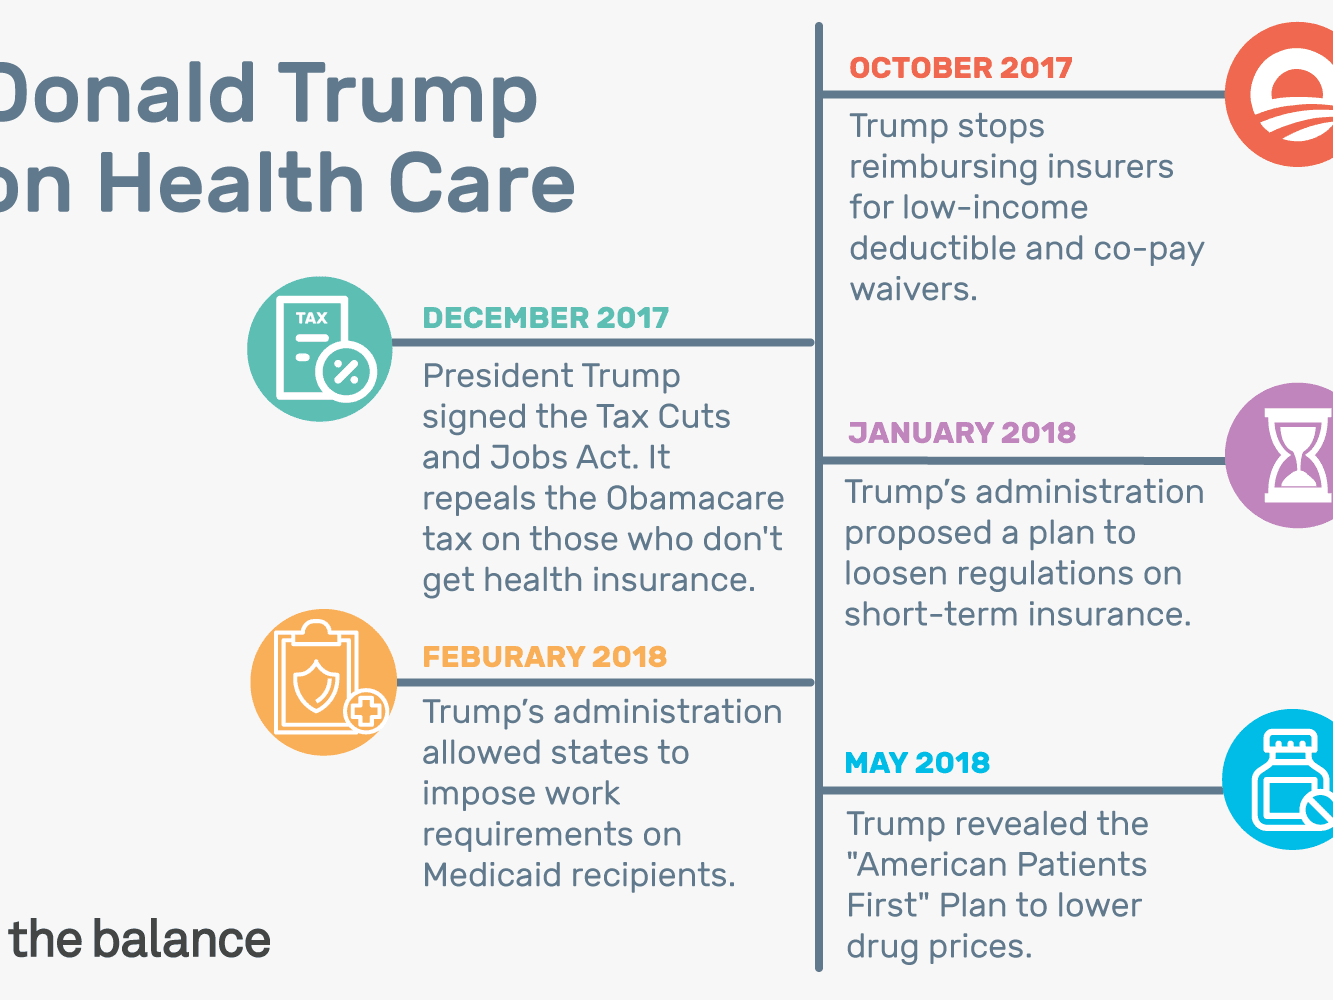 Donald Trump on Health Care: Consequences of His Plan